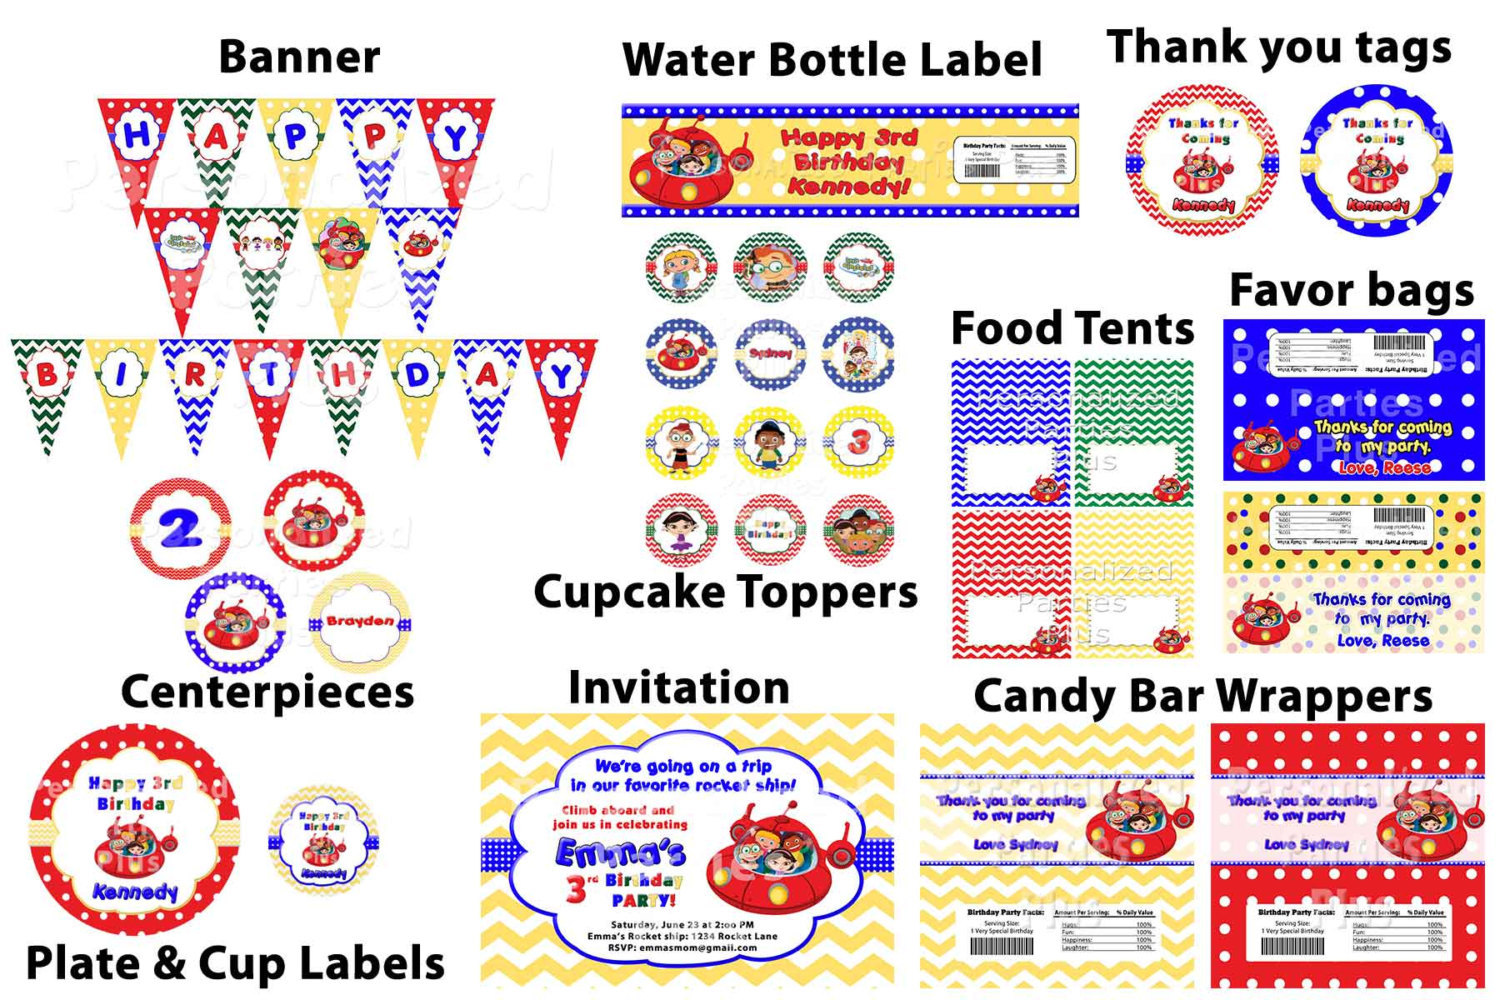 Little Einsteins birthday party pack: banner, invitation, cupcake toppers, water